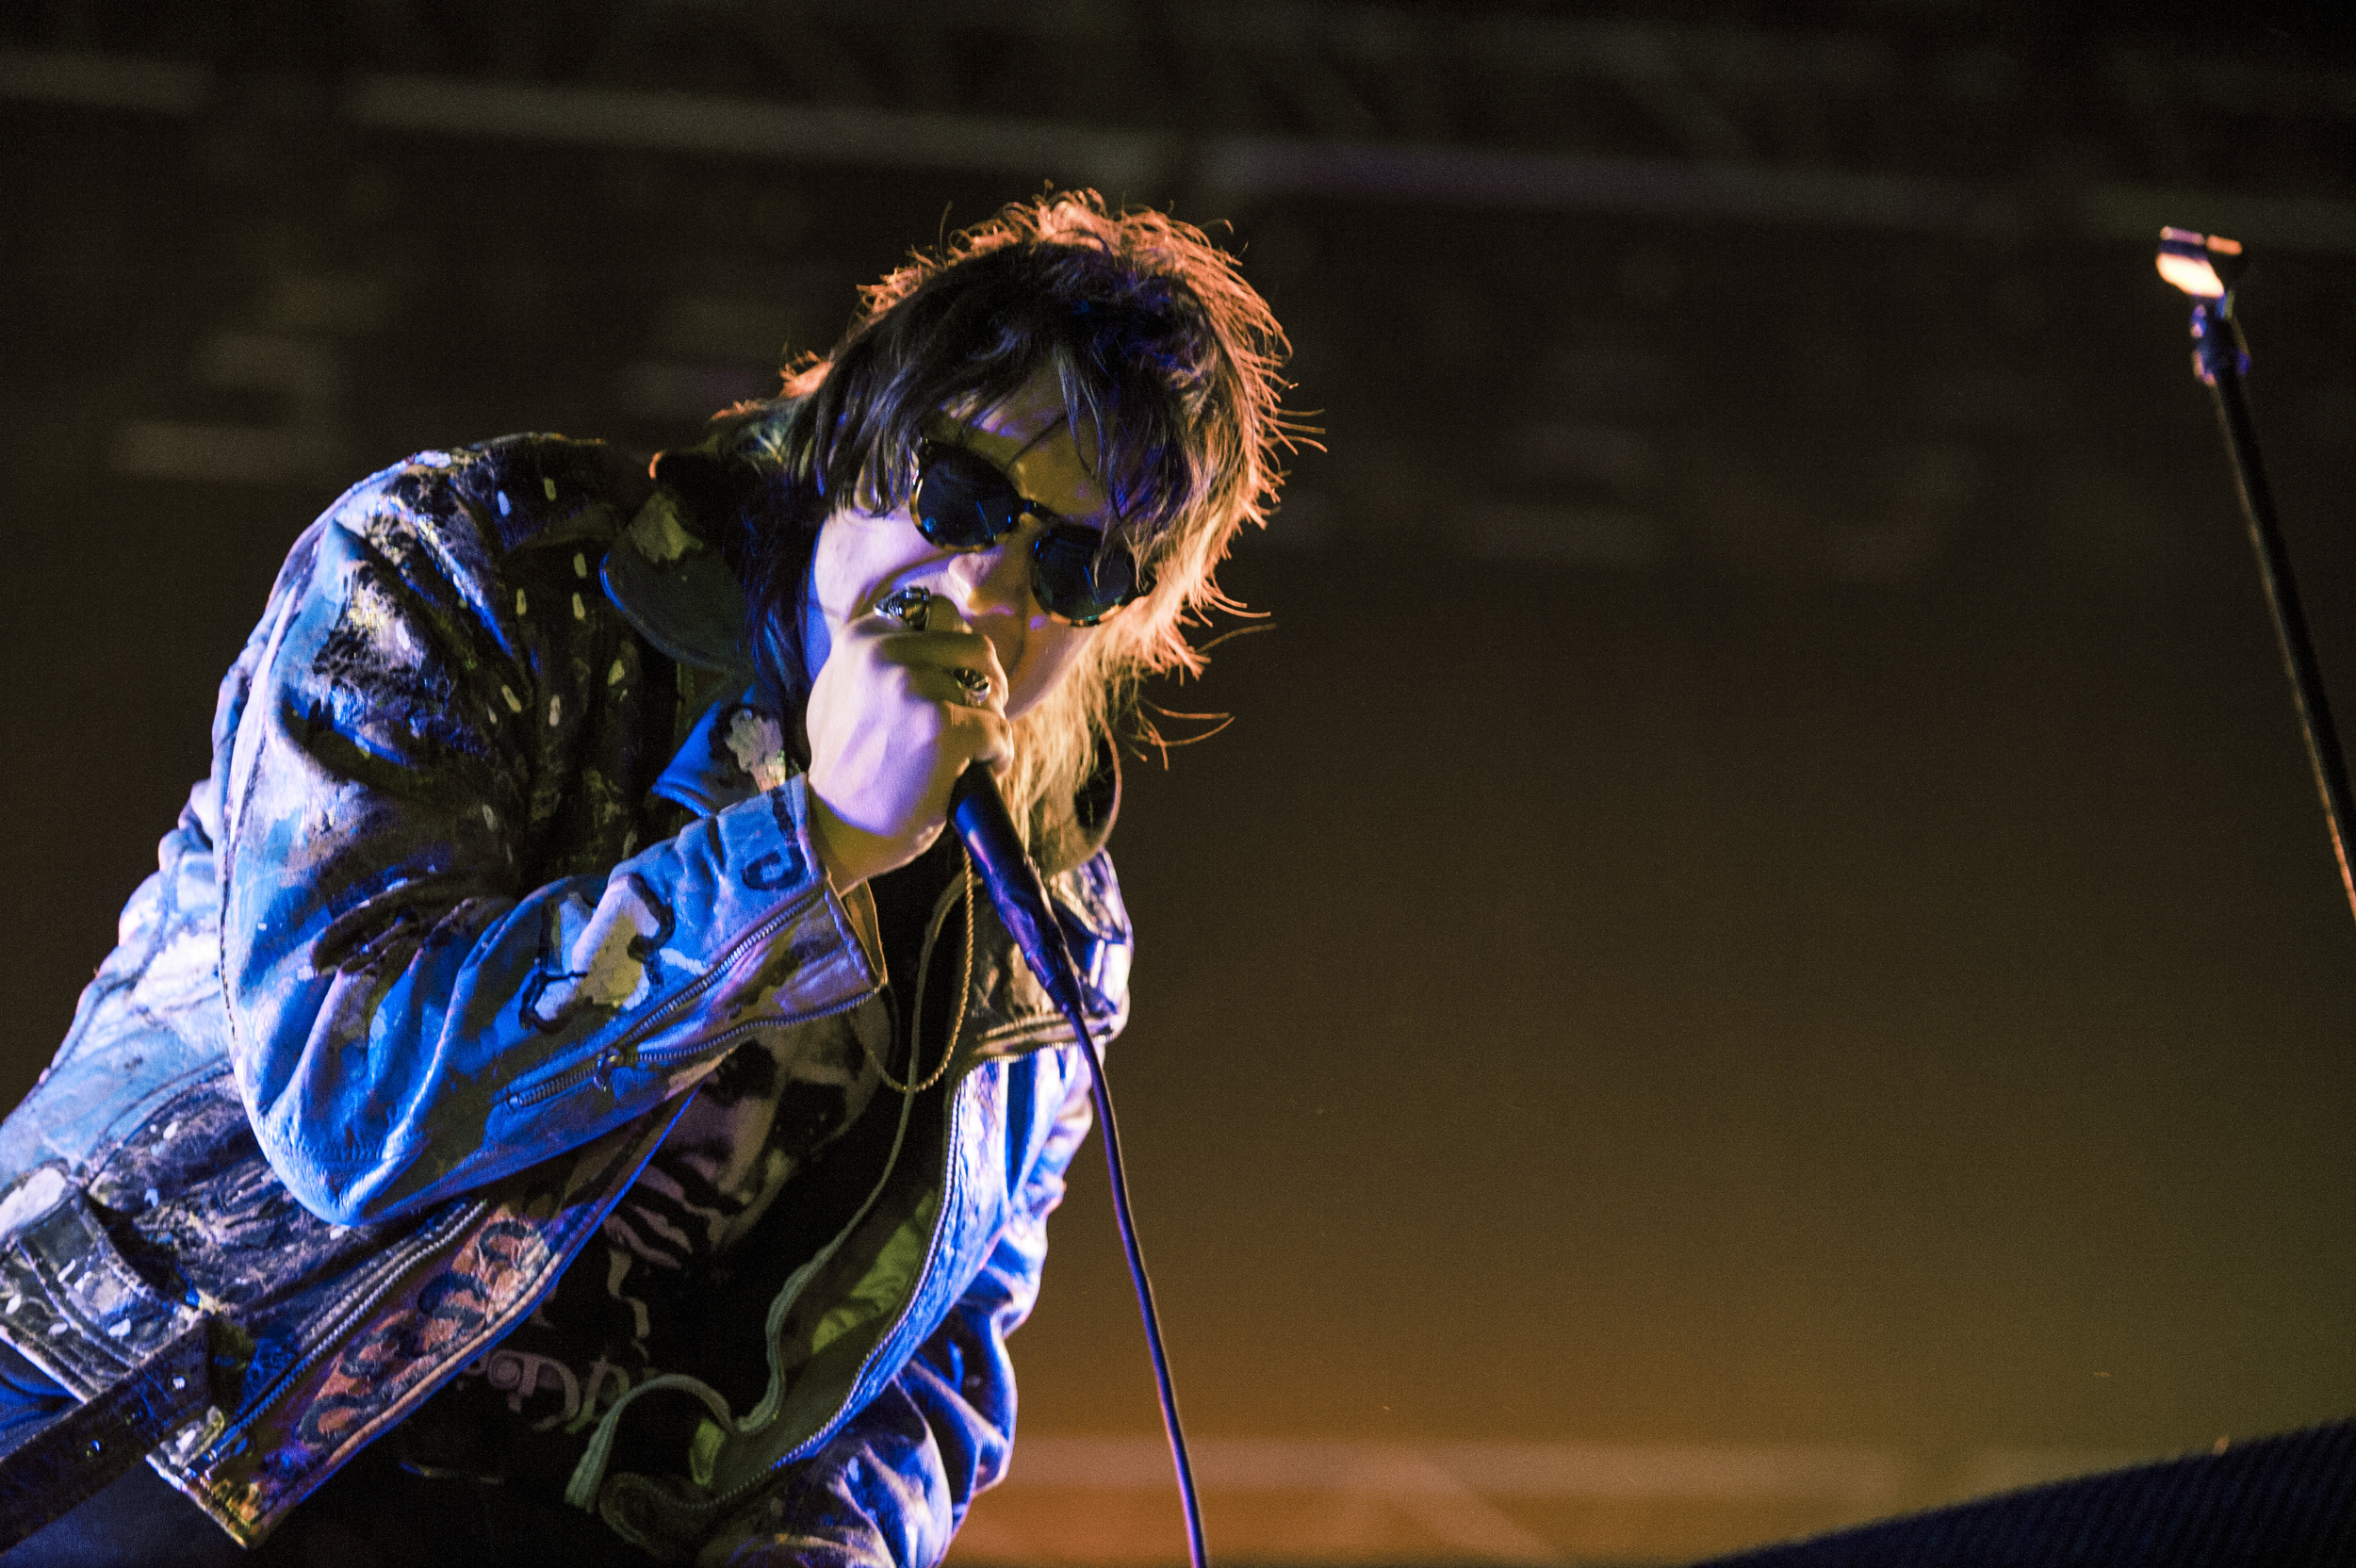 The Strokes at Landmark Festival